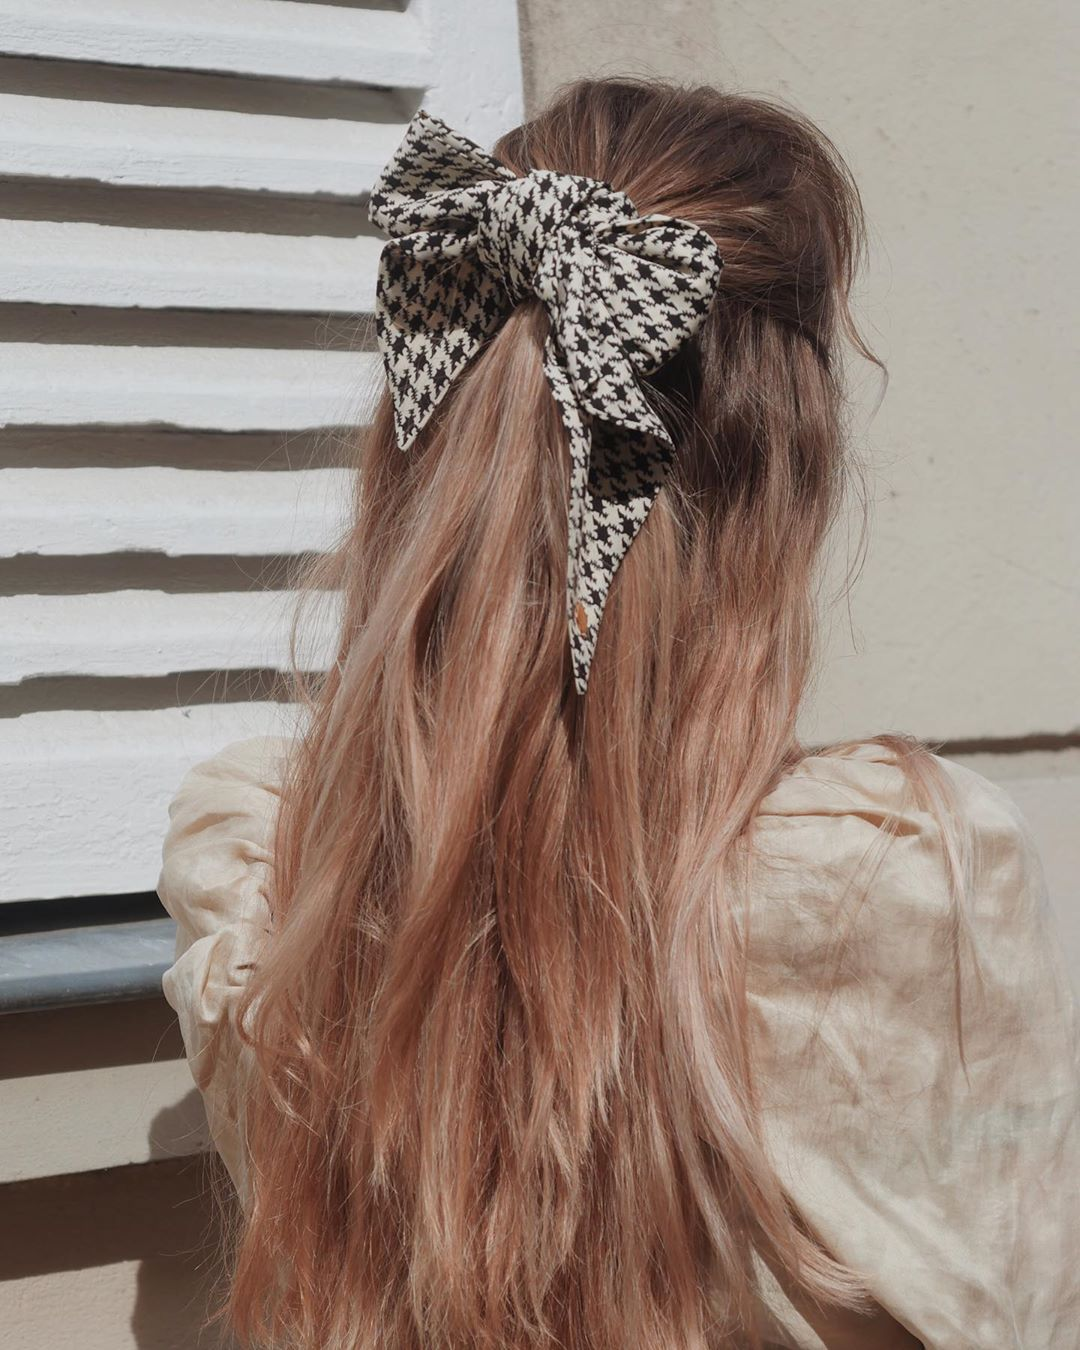 Halfup Hairstyle With Bow Tie 5